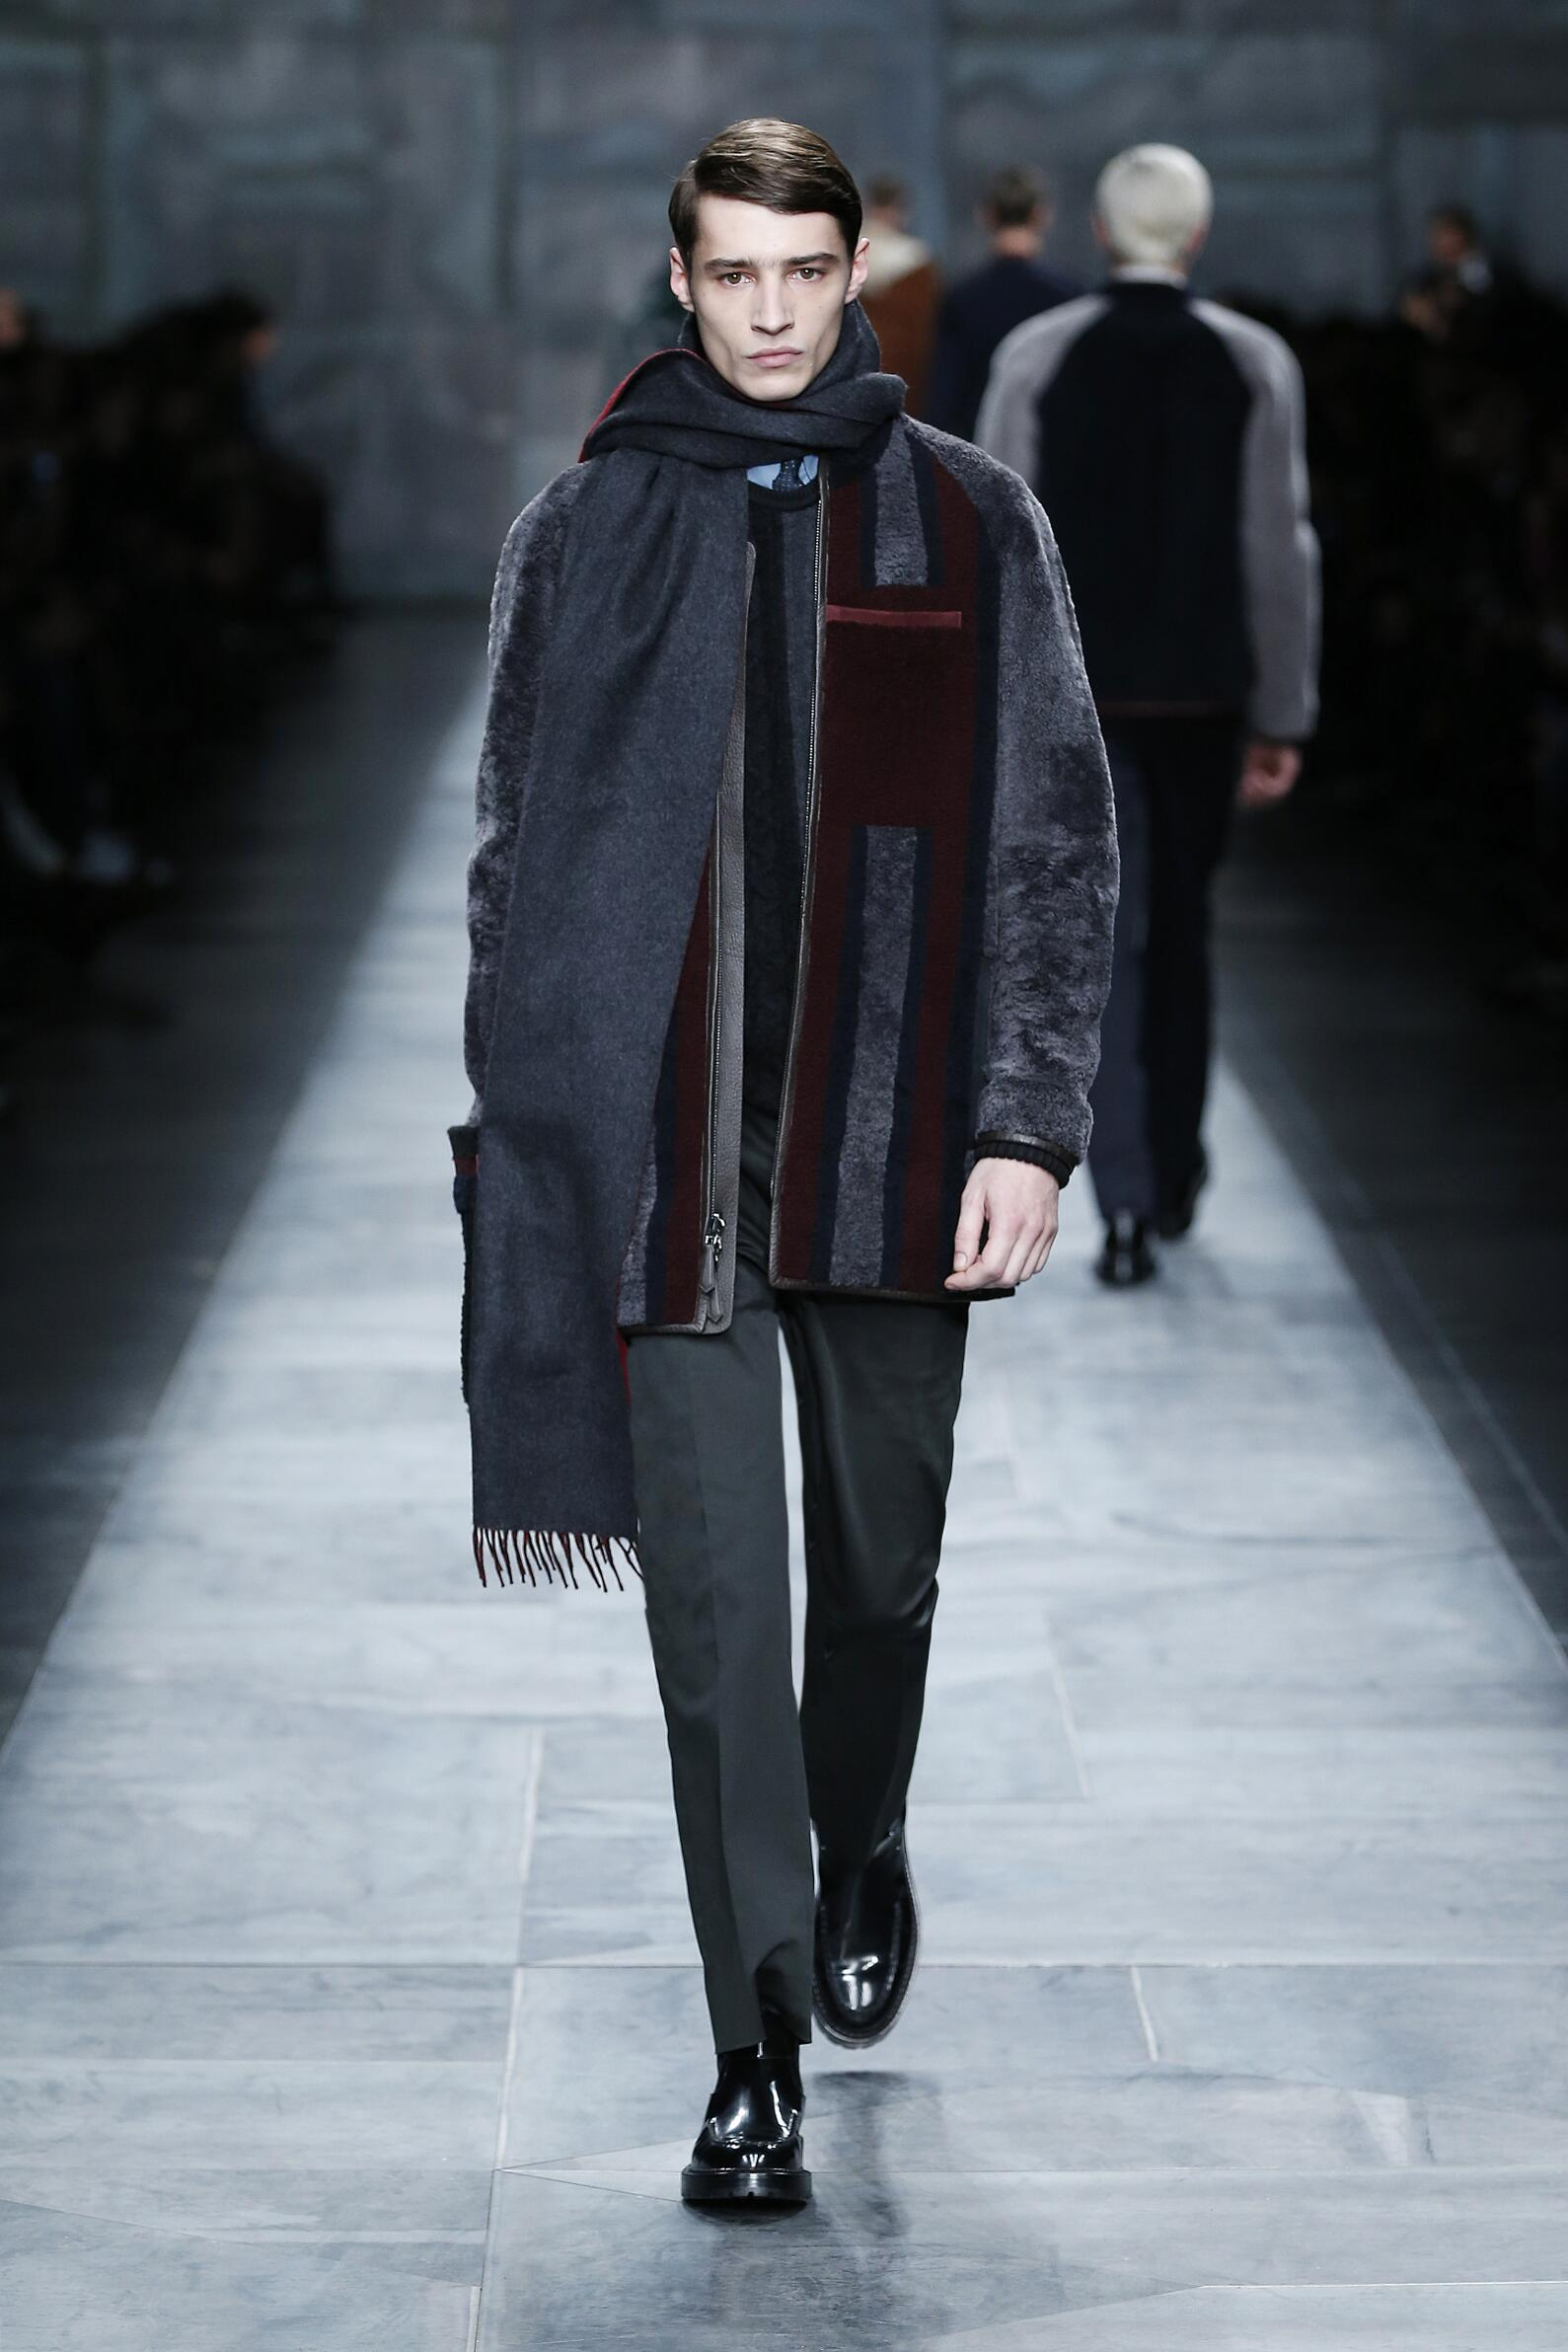 Catwalk Fendi Collection Fashion Show Winter 2015